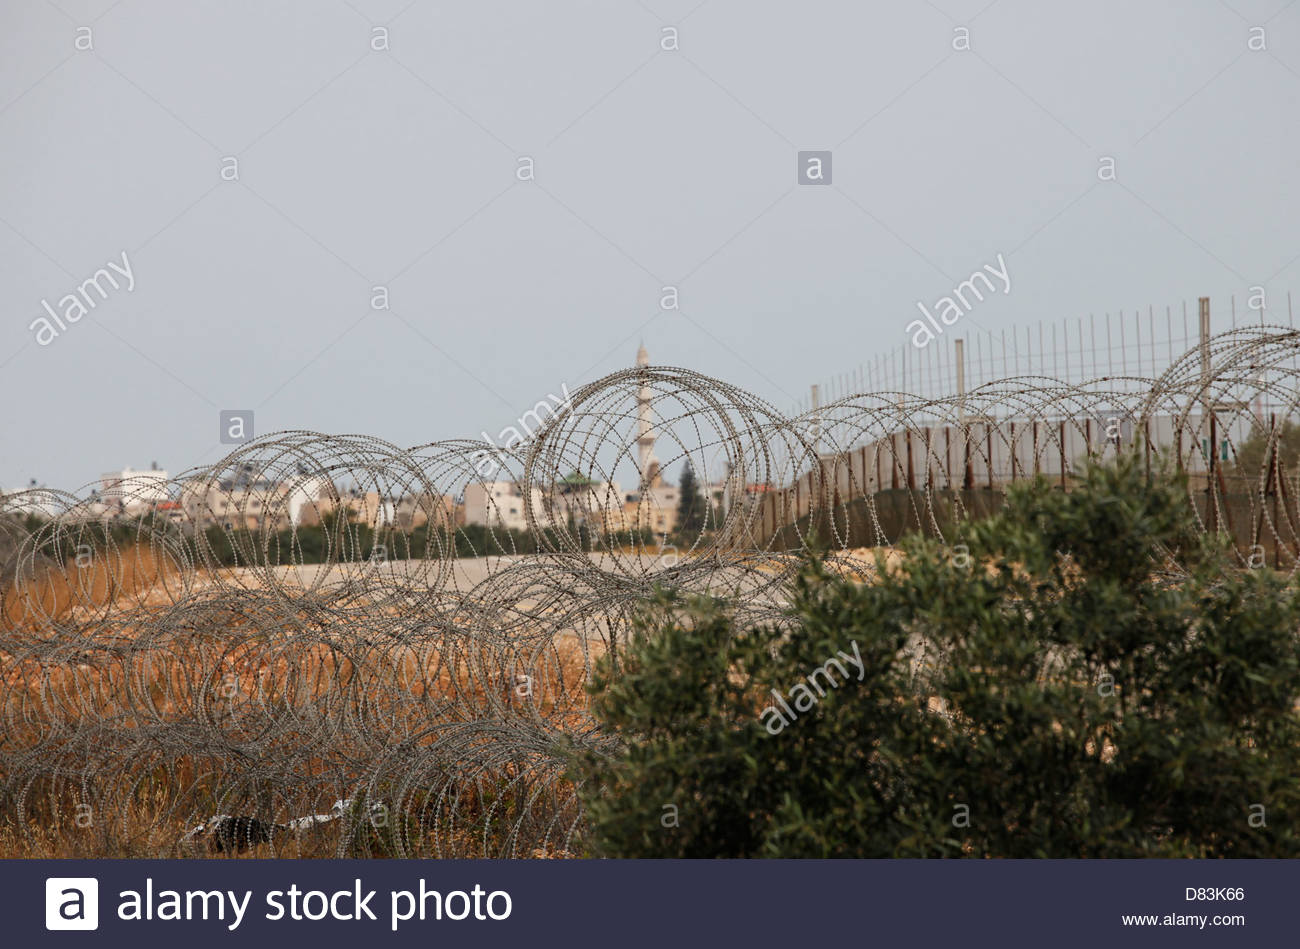 A Palestinian village is seen through barbed wires surrounding the religious Jewish settlement Modi'in Illit - Stock Image